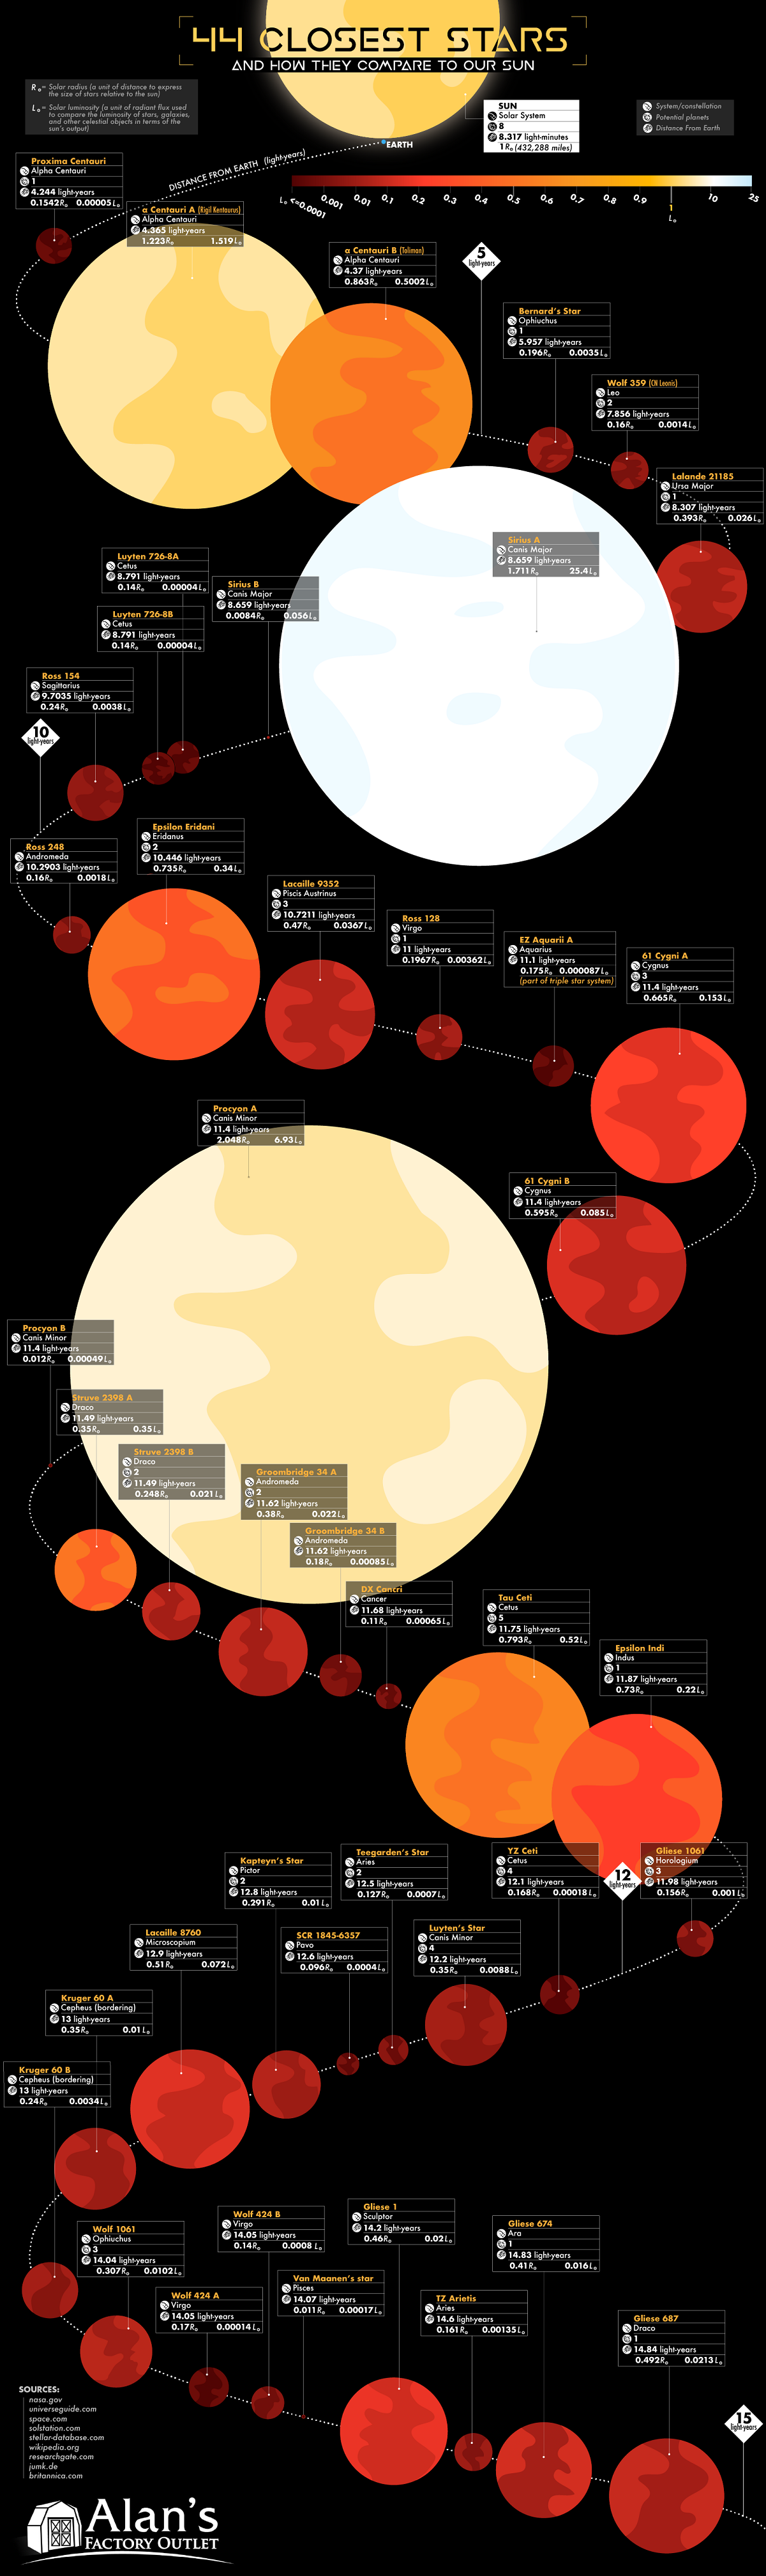 44 The nearest stars and their relation with our Sun #infographic